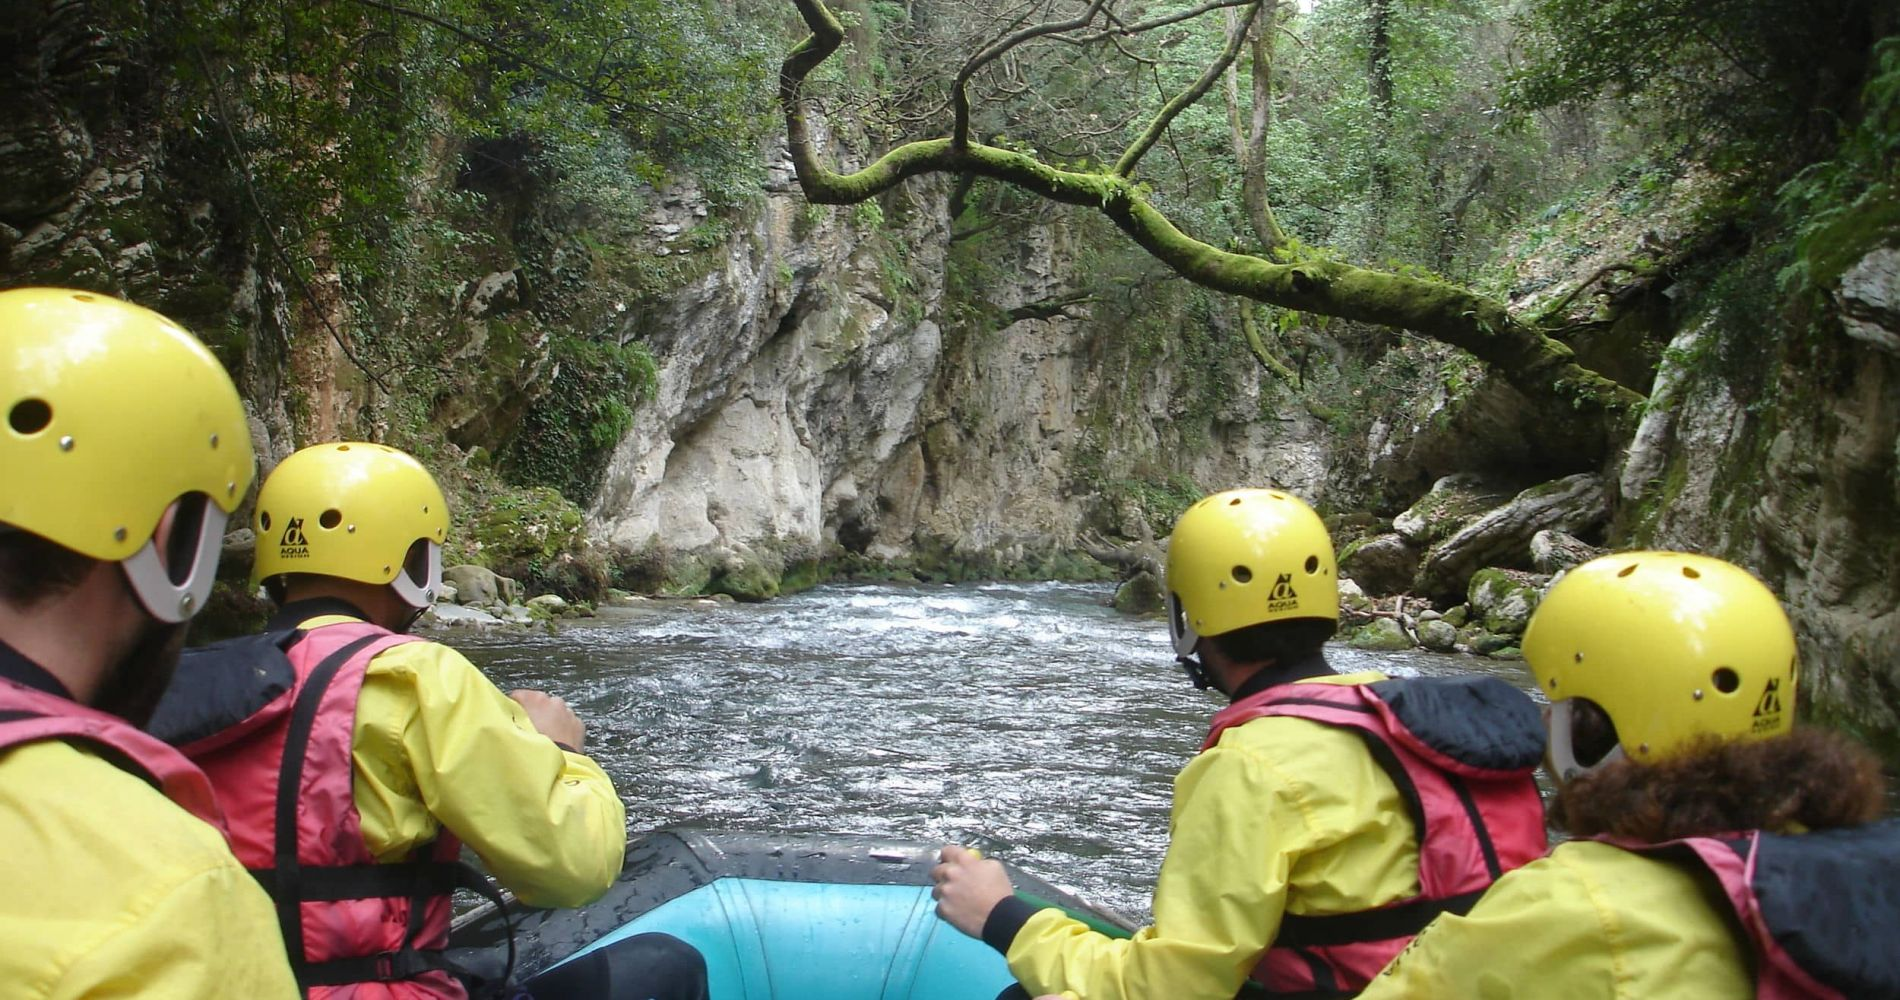 Rafting Lousios Gorge in Greece for Two